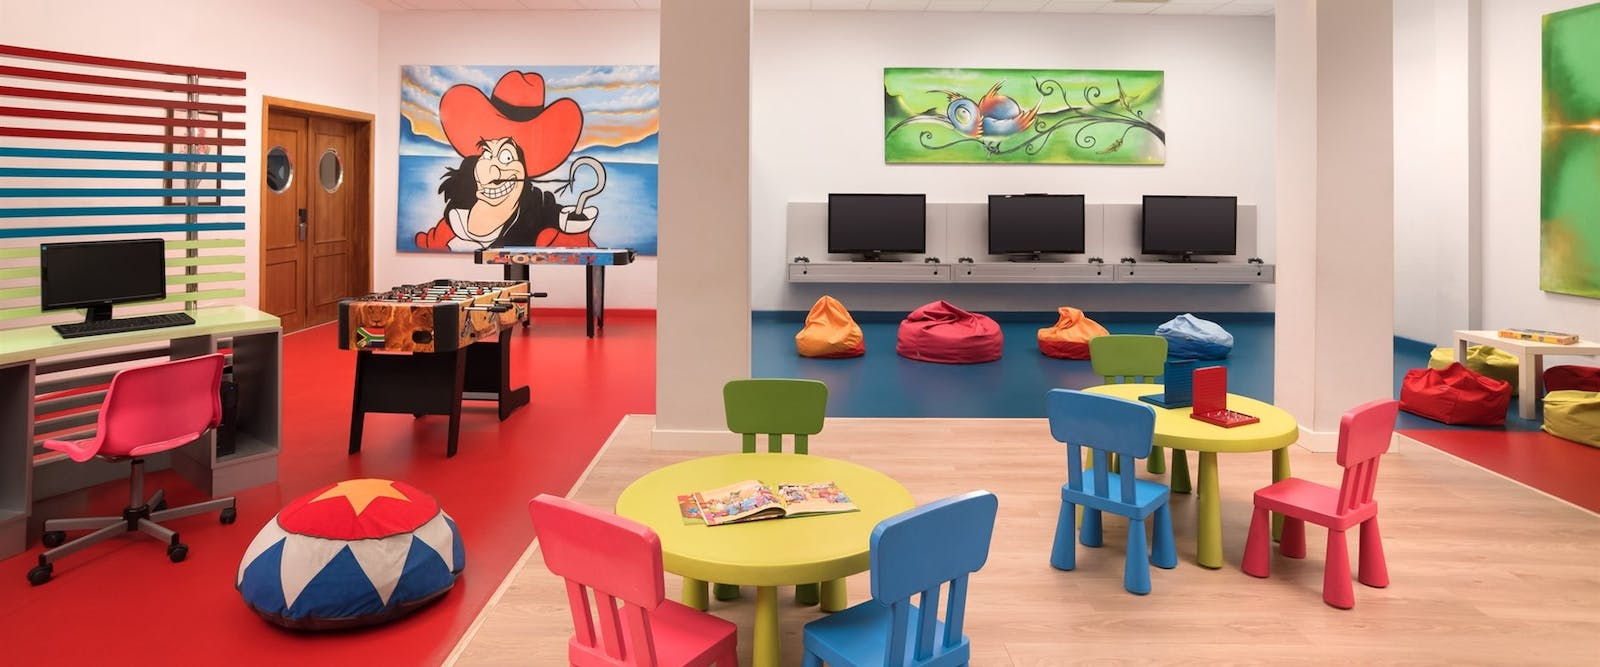 Magma Playroom at Sheraton La Caleta Resort, Tenerife